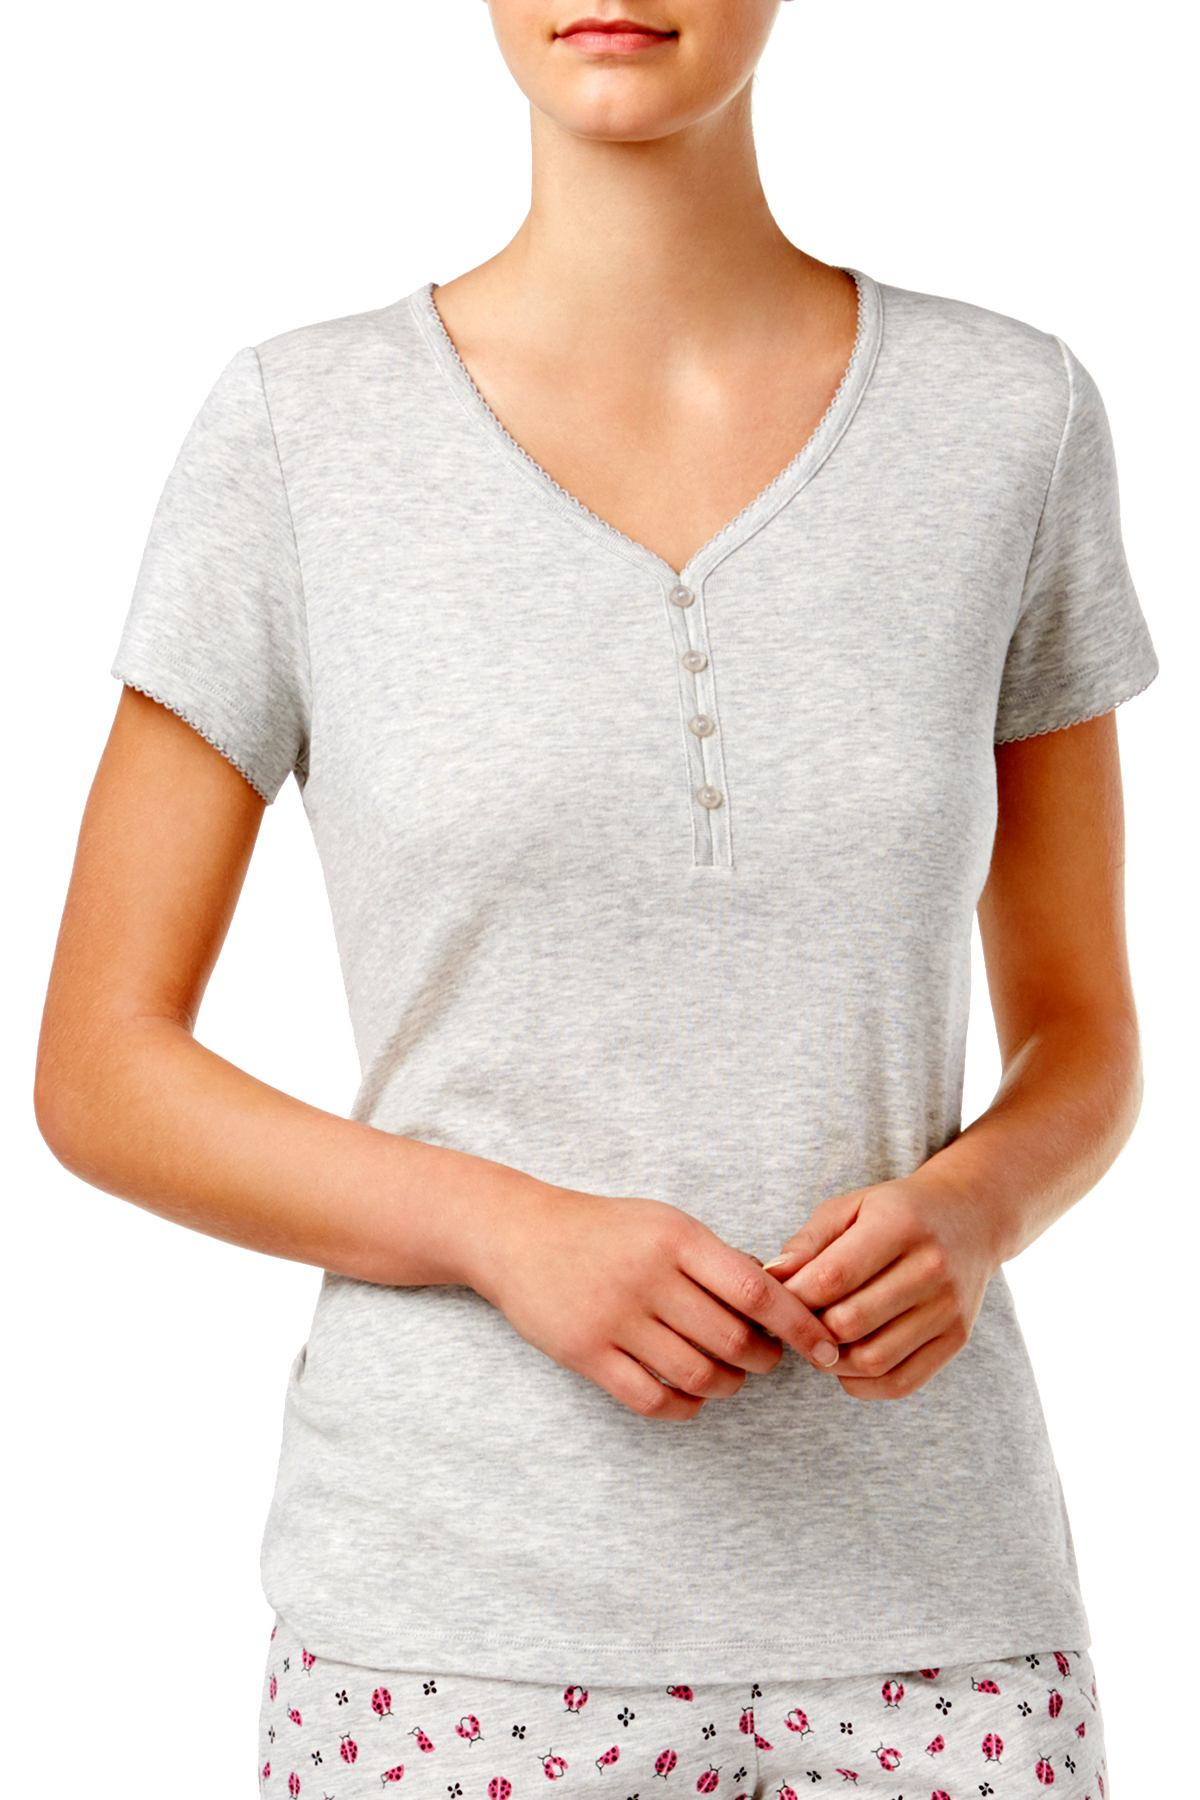 Charter Club Intimates Light Grey Heather V-Neck Tee